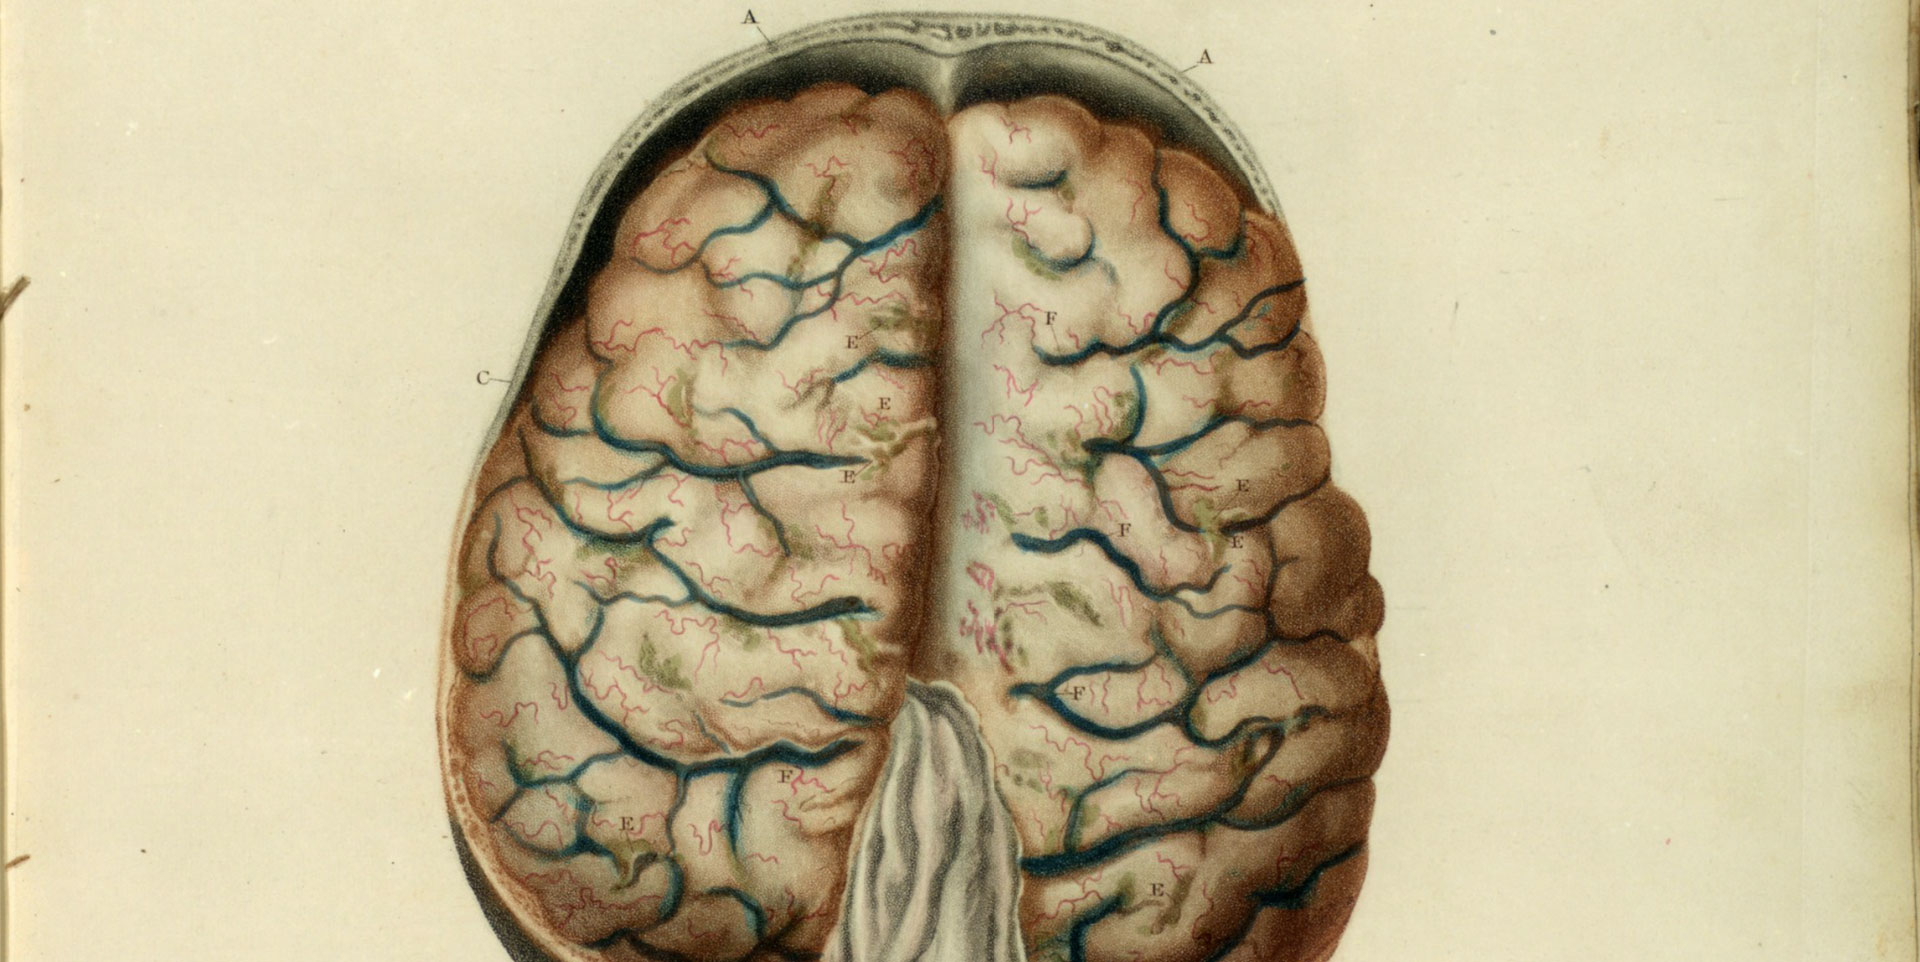 Inflammation of the pia mater.